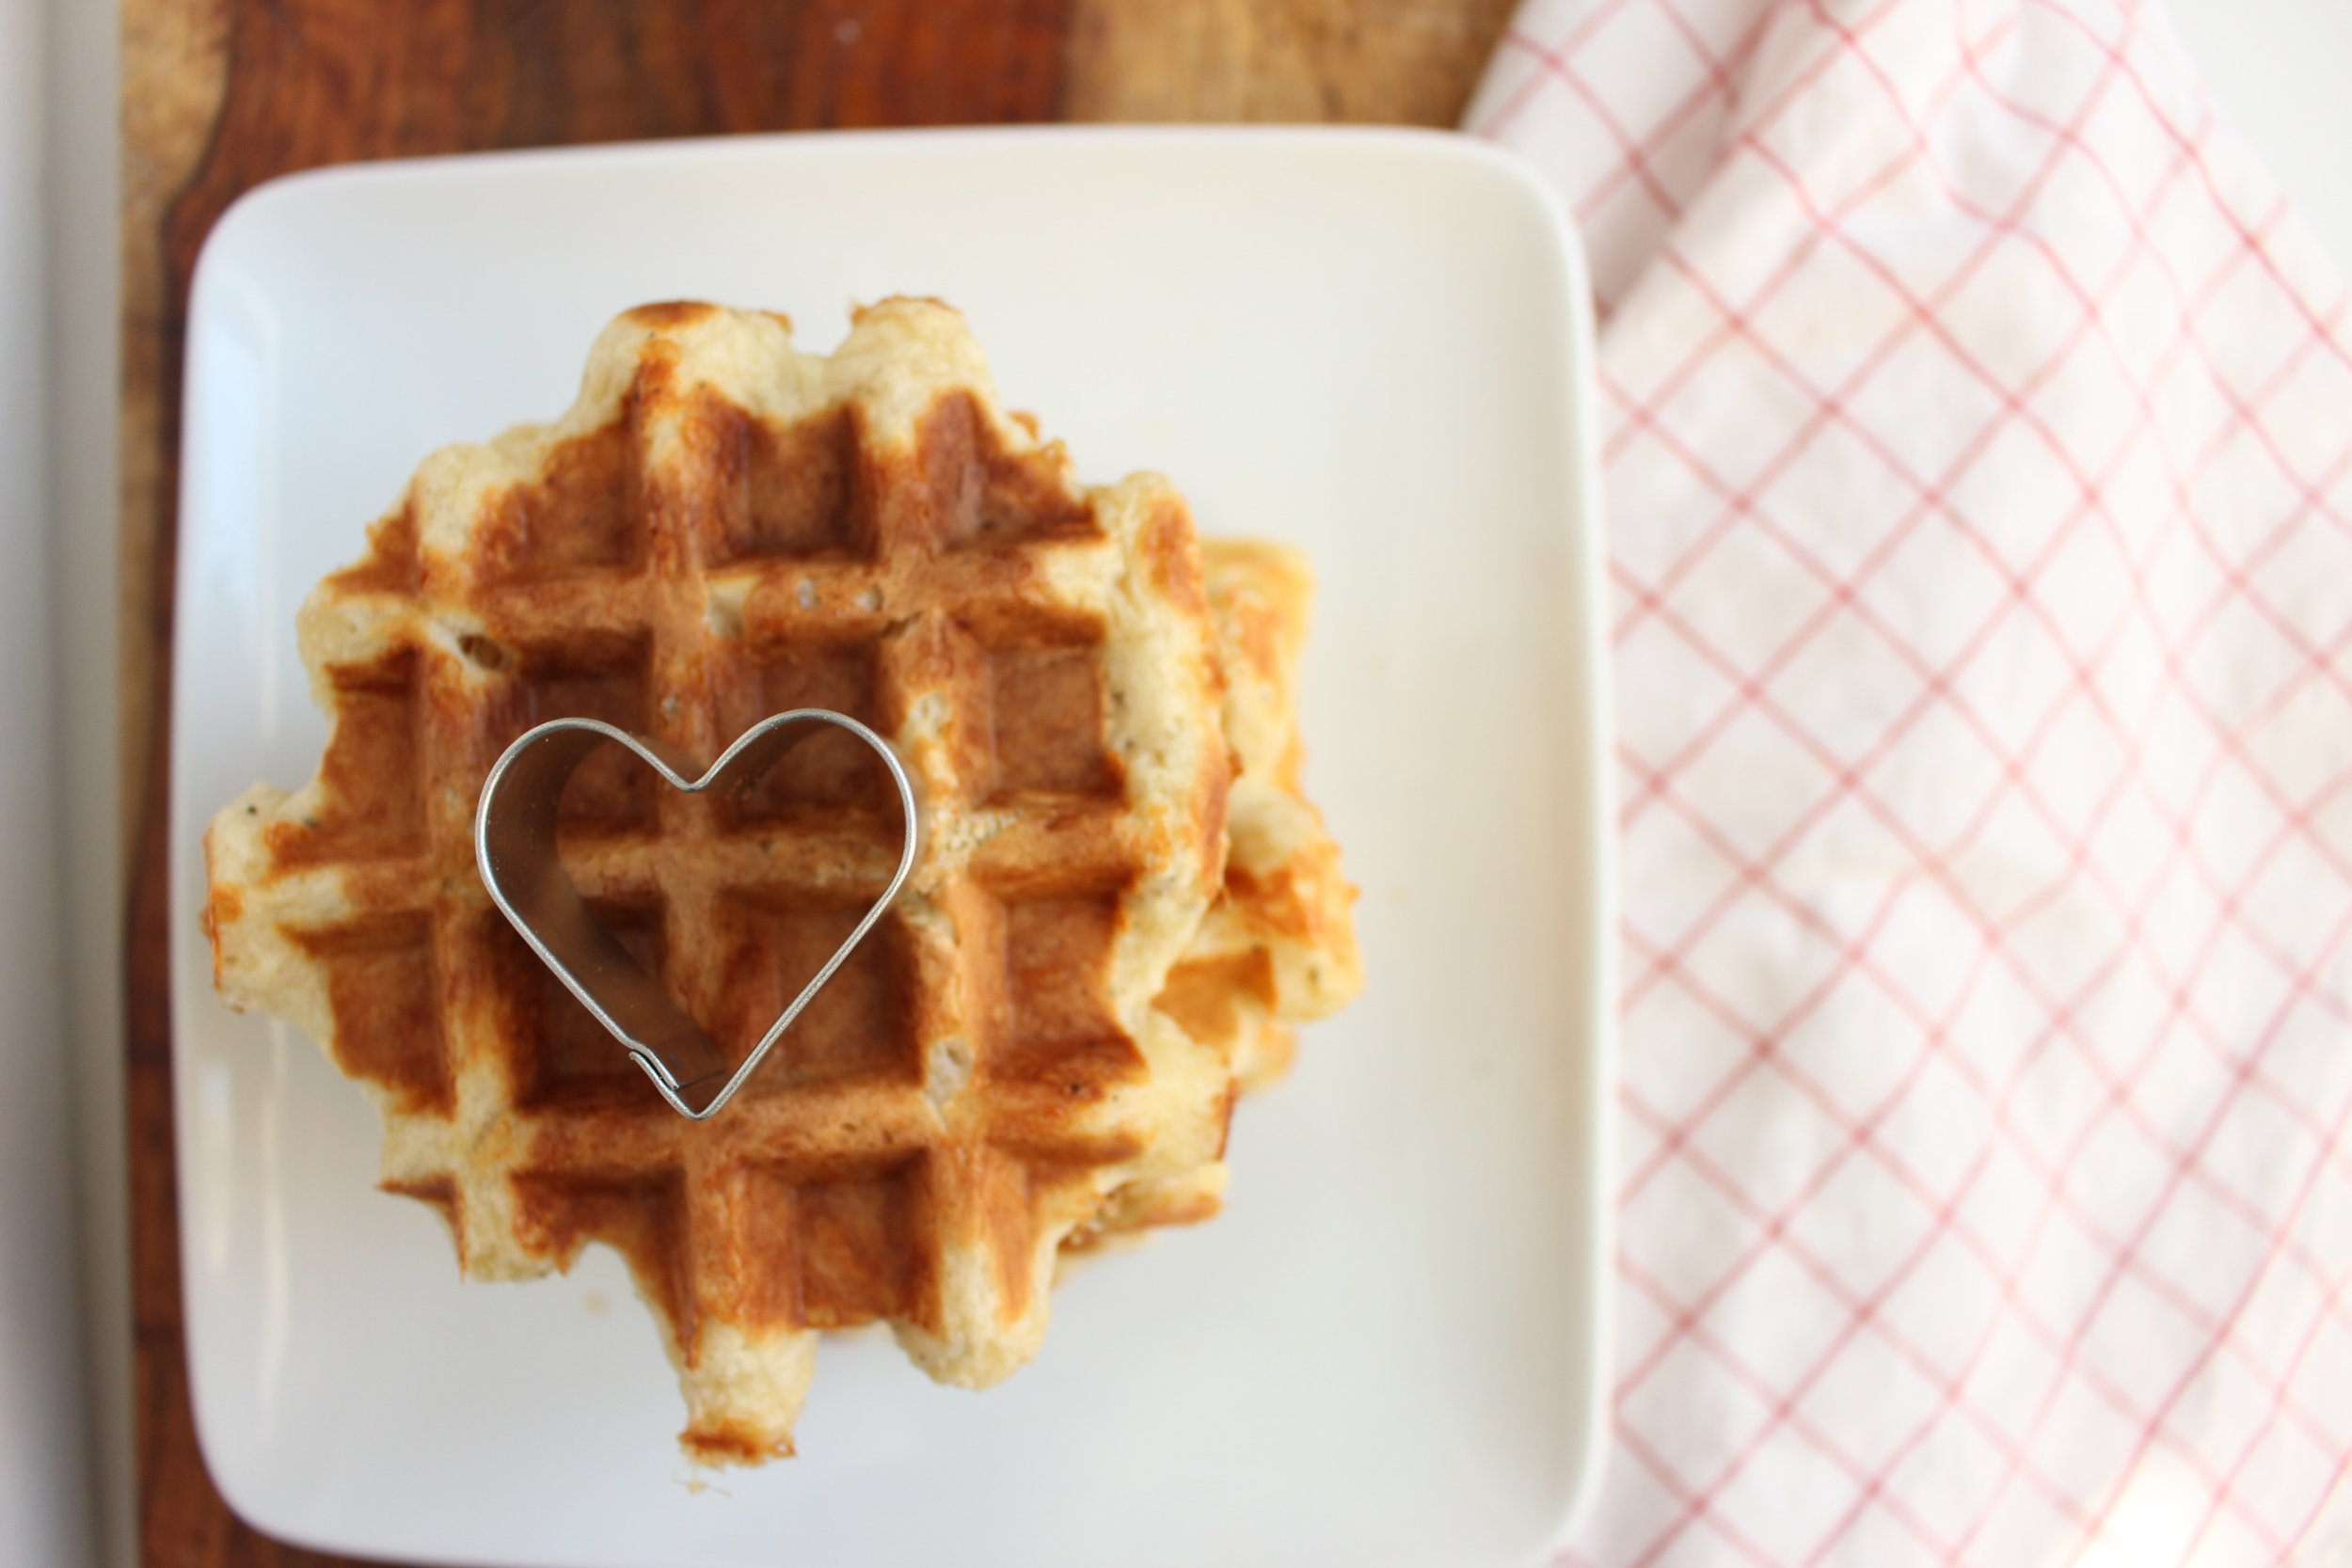 Tomato soup and cheese waffles   Me & The Moose. Winter weather means tomato soup and grilled cheese, so switch it up for your next snow day with cheese waffles. Also, you can skip the dairy and still make a creamy tomato soup if dairy isn't your thing. #meandthemoose #tomatosoup #cheesewaffles #wafflerecipes #souprecipes #dairyfreesoup #lunchrecipes